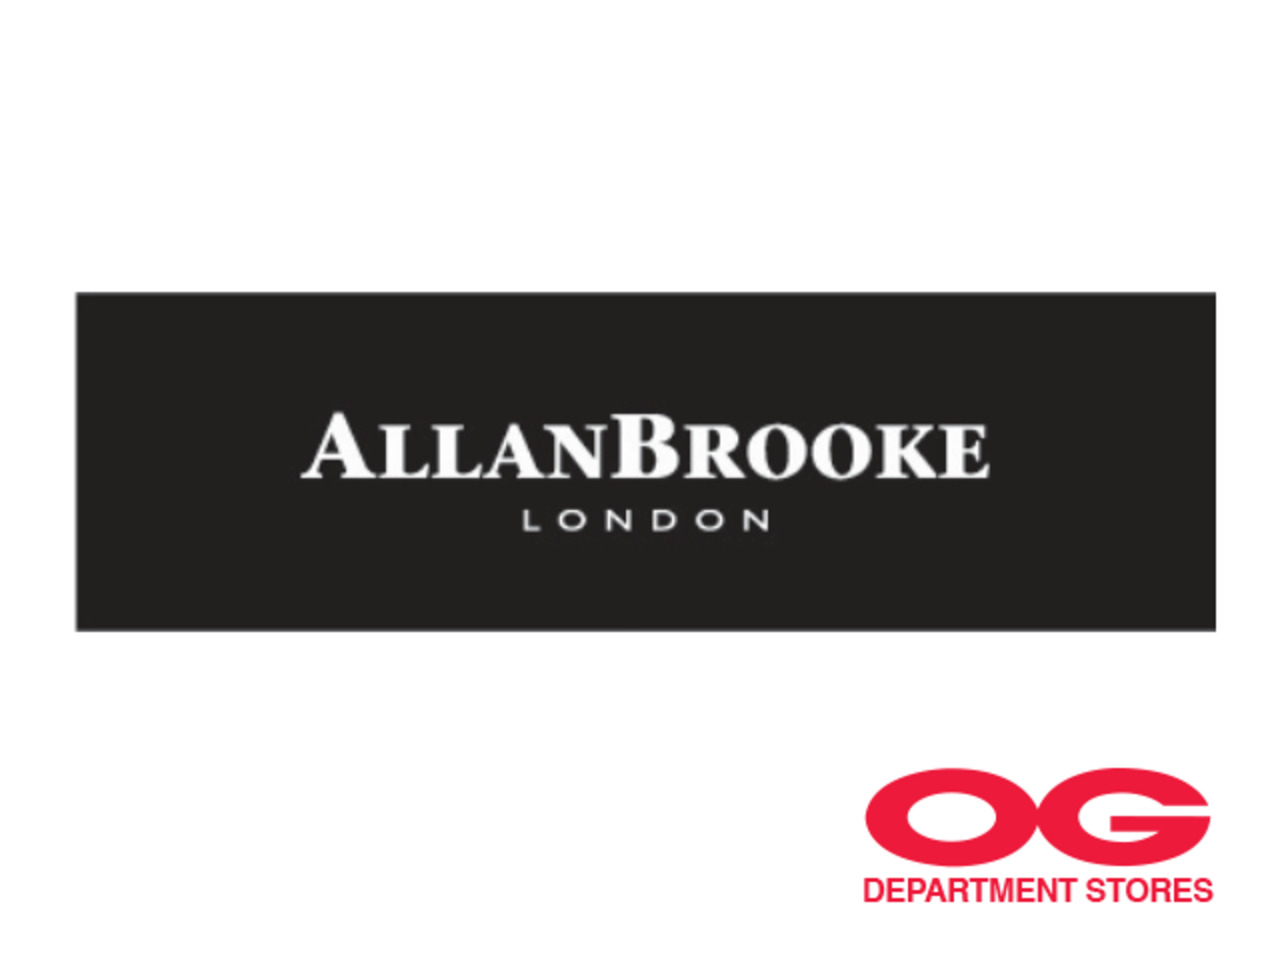 ALLAN BROOKE All Regular-Priced Men's Apparel @ 20% + 20% off